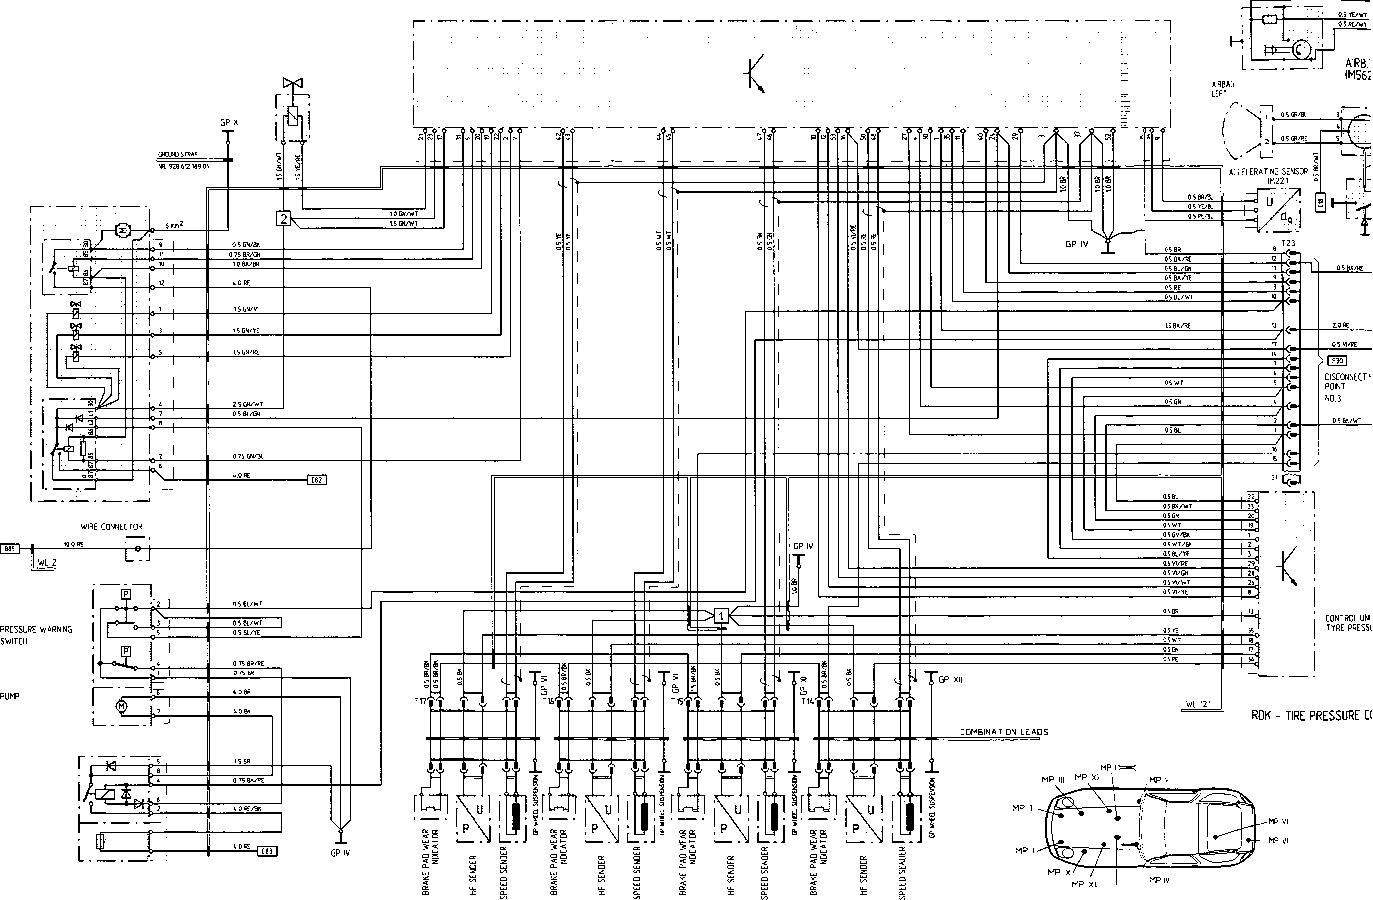 hight resolution of porsche 944 engine diagram wiring diagram third levelporsche 944 abs wiring diagram wiring diagram todays porsche